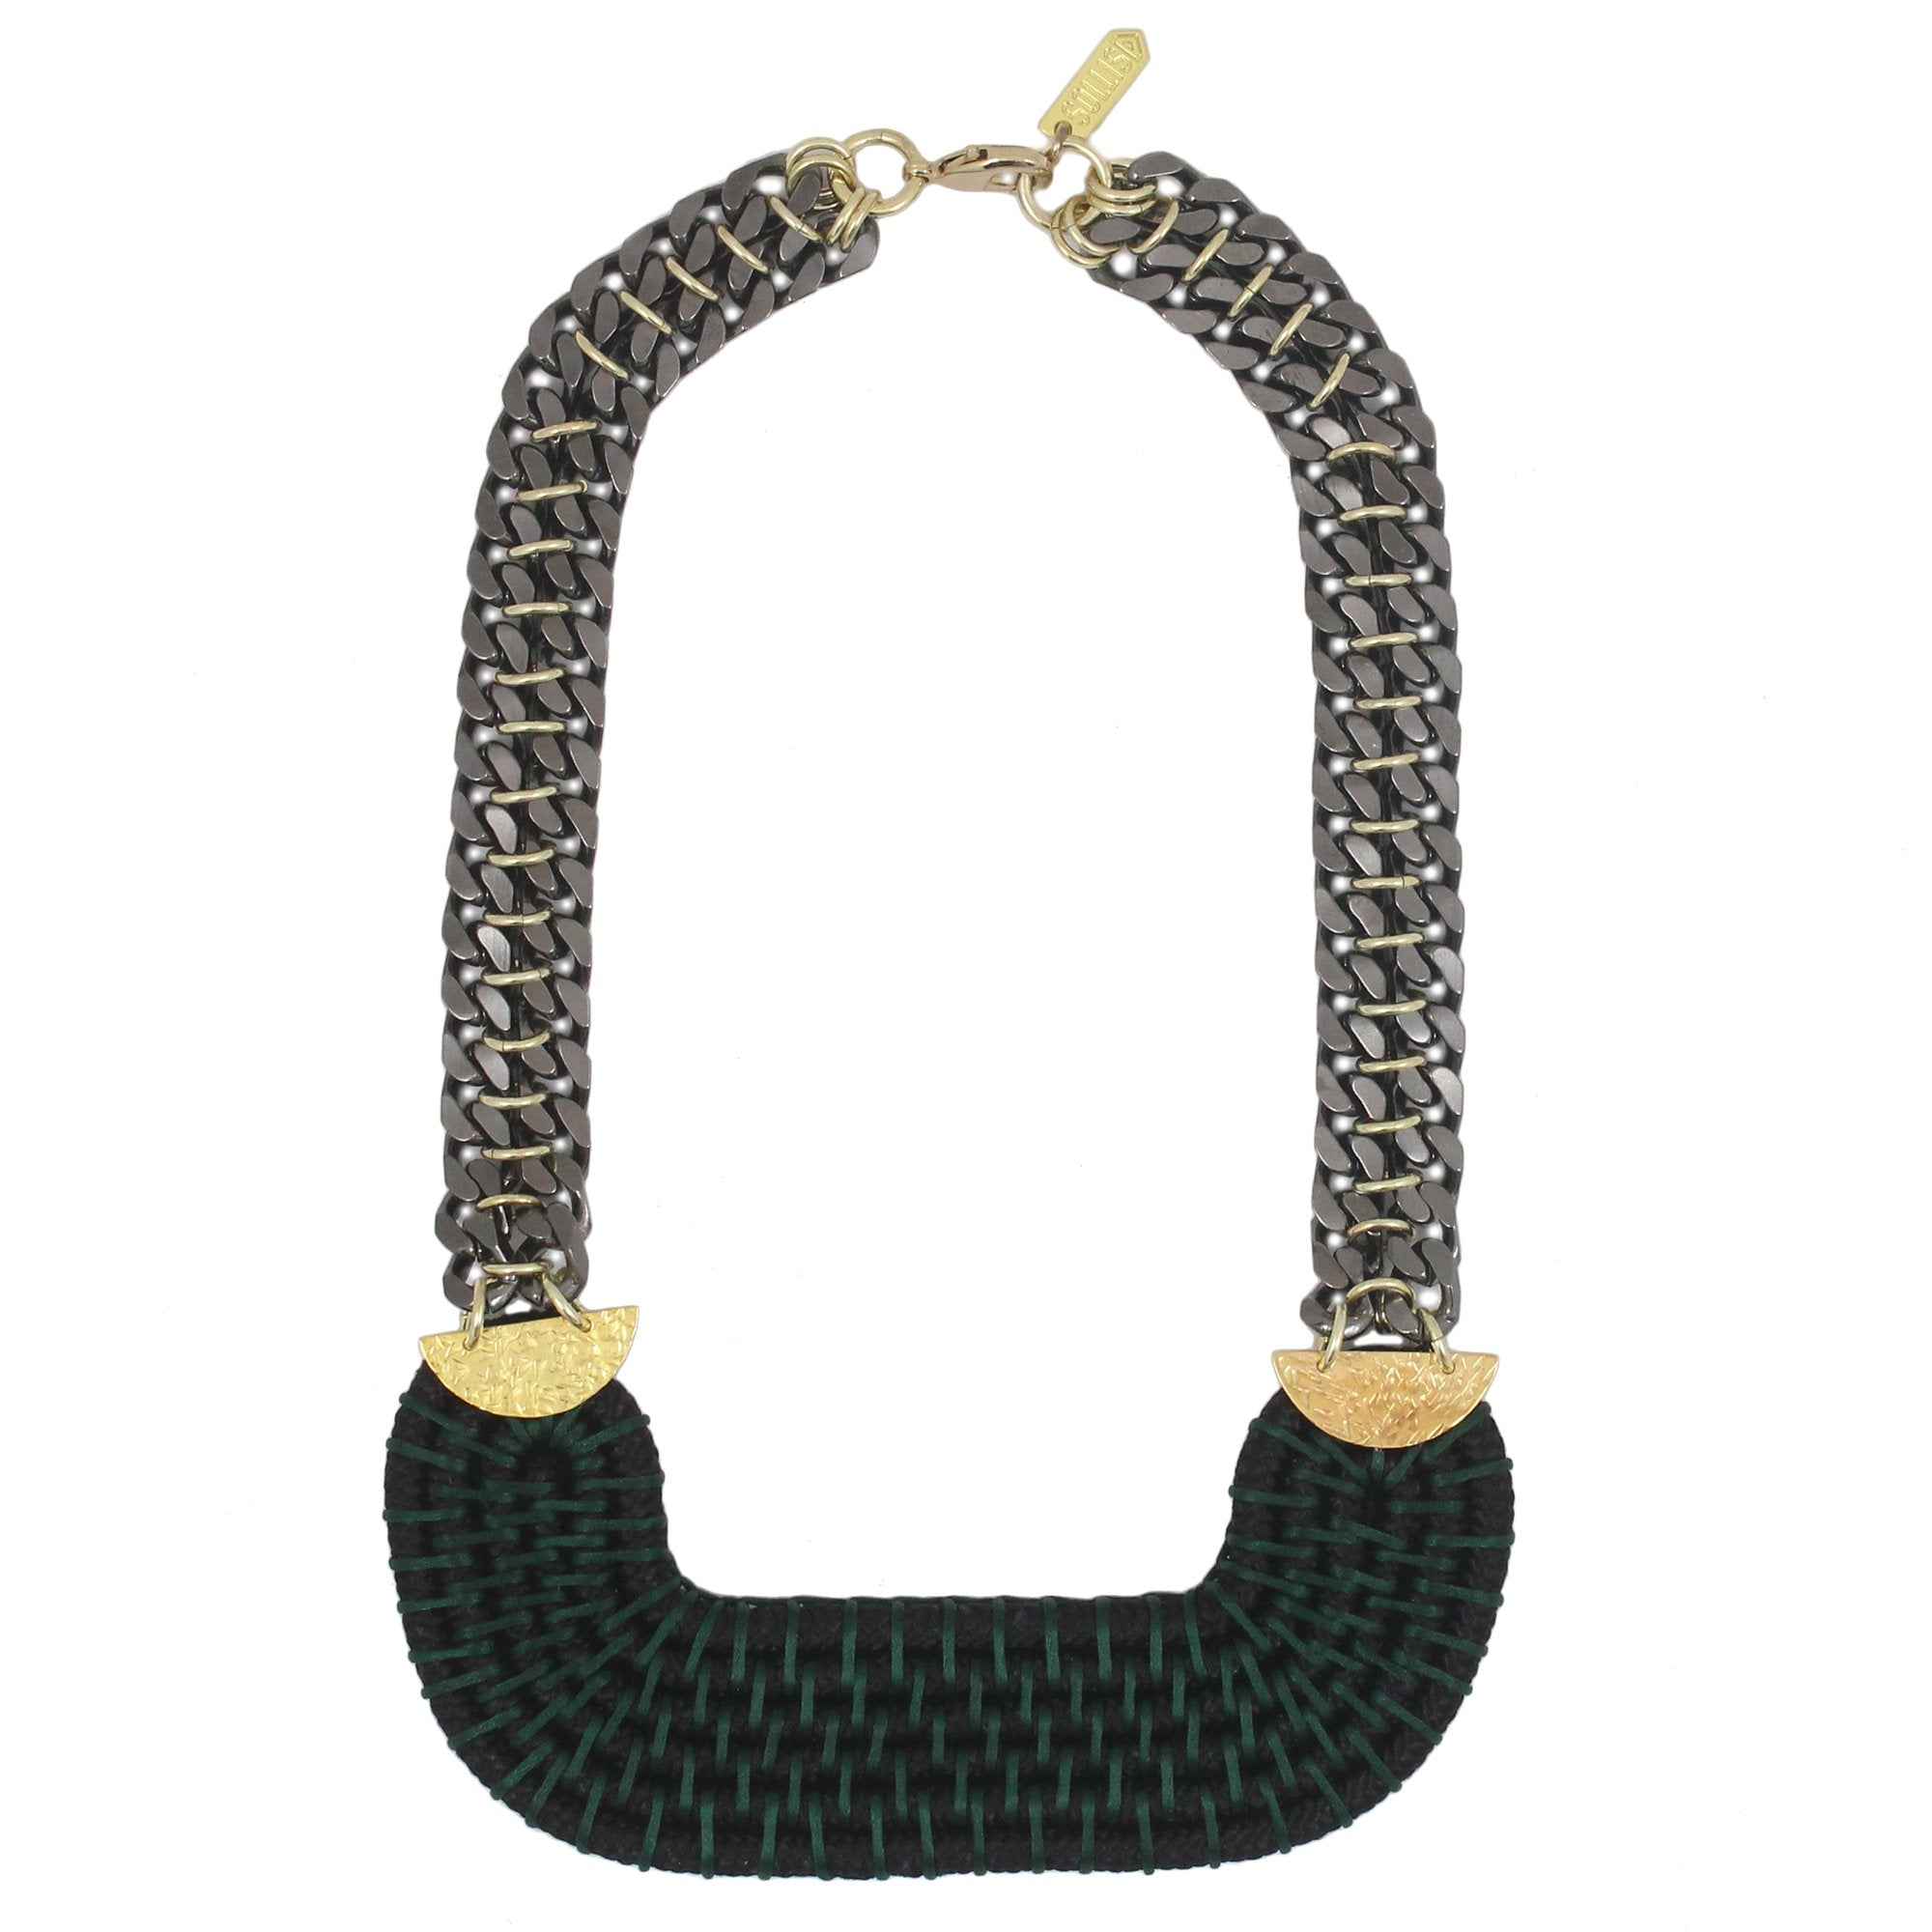 NANDI necklace - 60% OFF